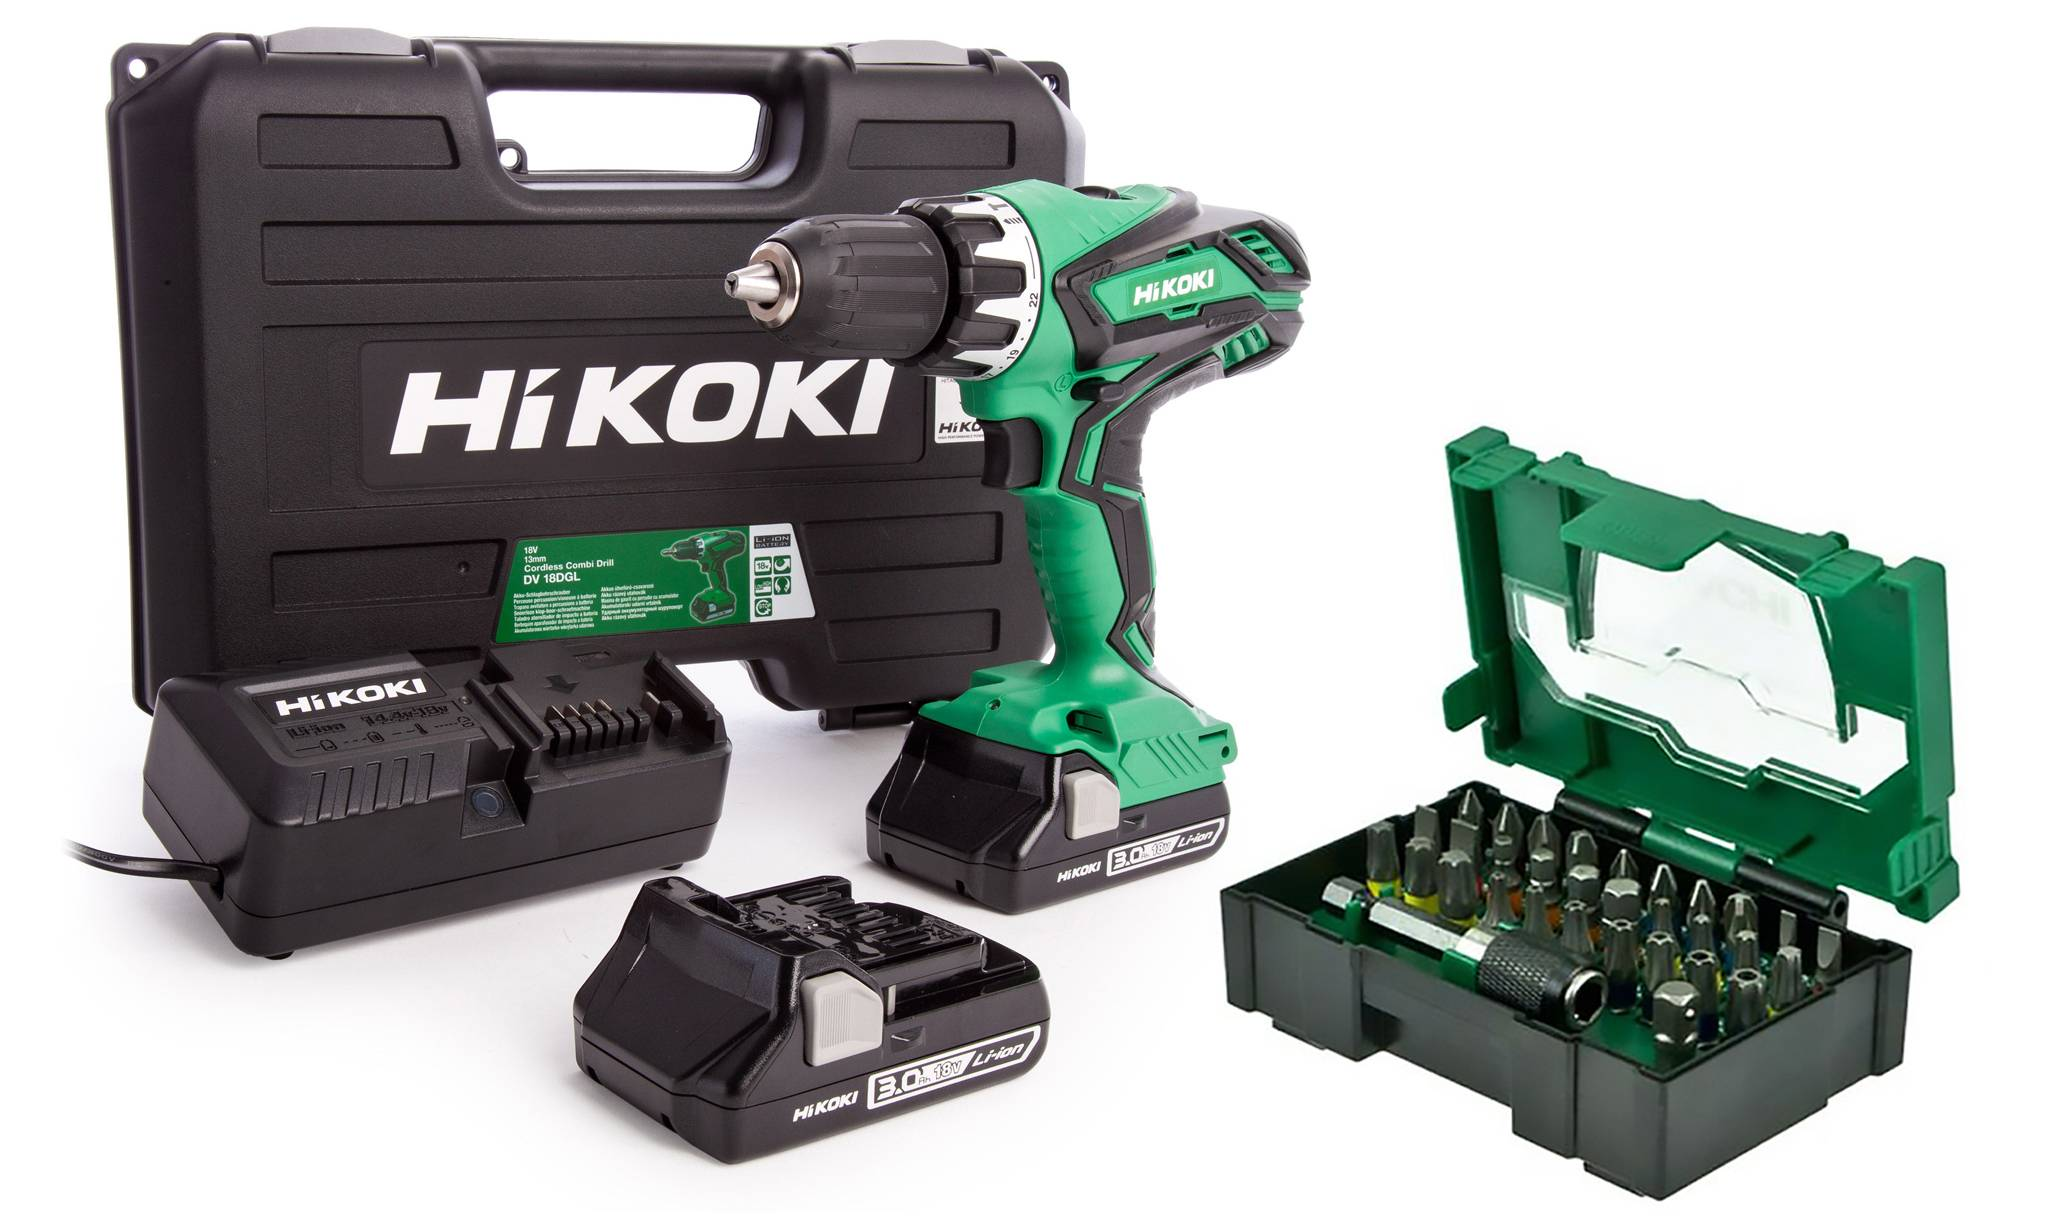 Visseuse perceuse Hitachi Hikoki 18V li-ion